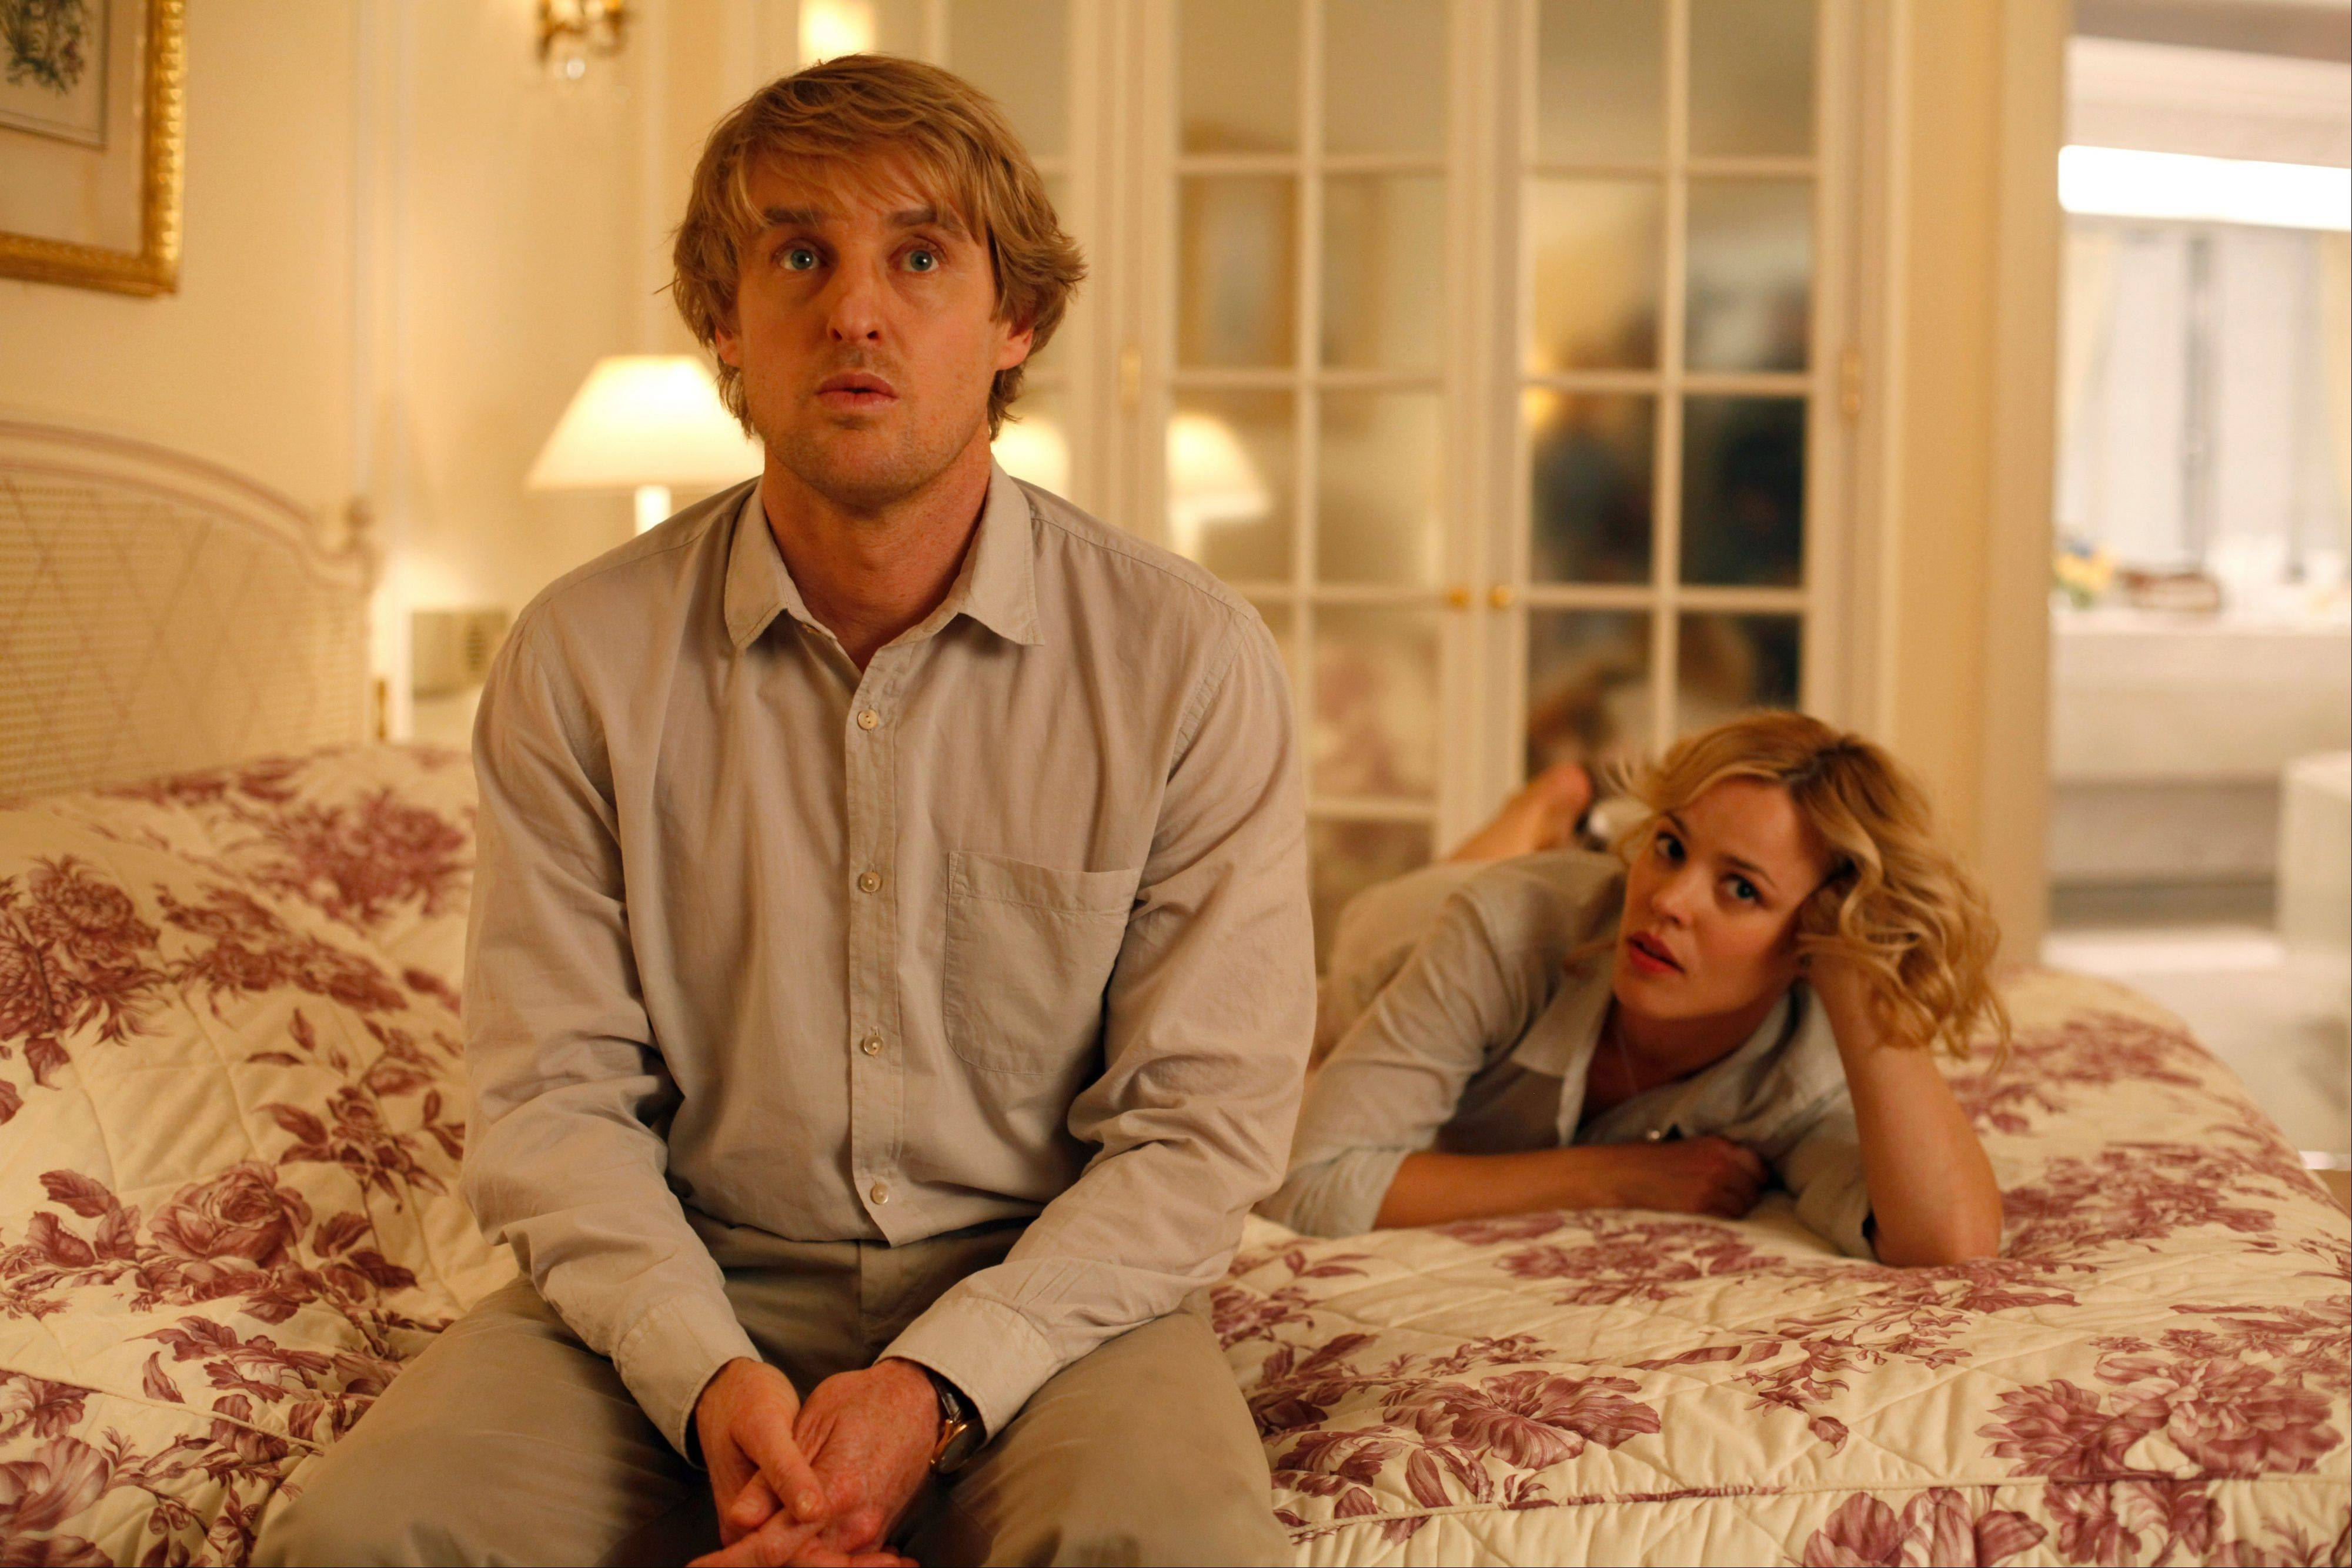 Owen Wilson and Rachel McAdam star in Woody Allen�s whimiscal comedy �Midnight in Paris.� The author�s literary estate is suing Sony Pictures Classics for using a paraphrase of the line in the 2011 film. Wilson slightly misquoted the line from Faulkner�s �Requiem for a Nun.� He said, �The past is not dead! Actually, it�s not even past.�